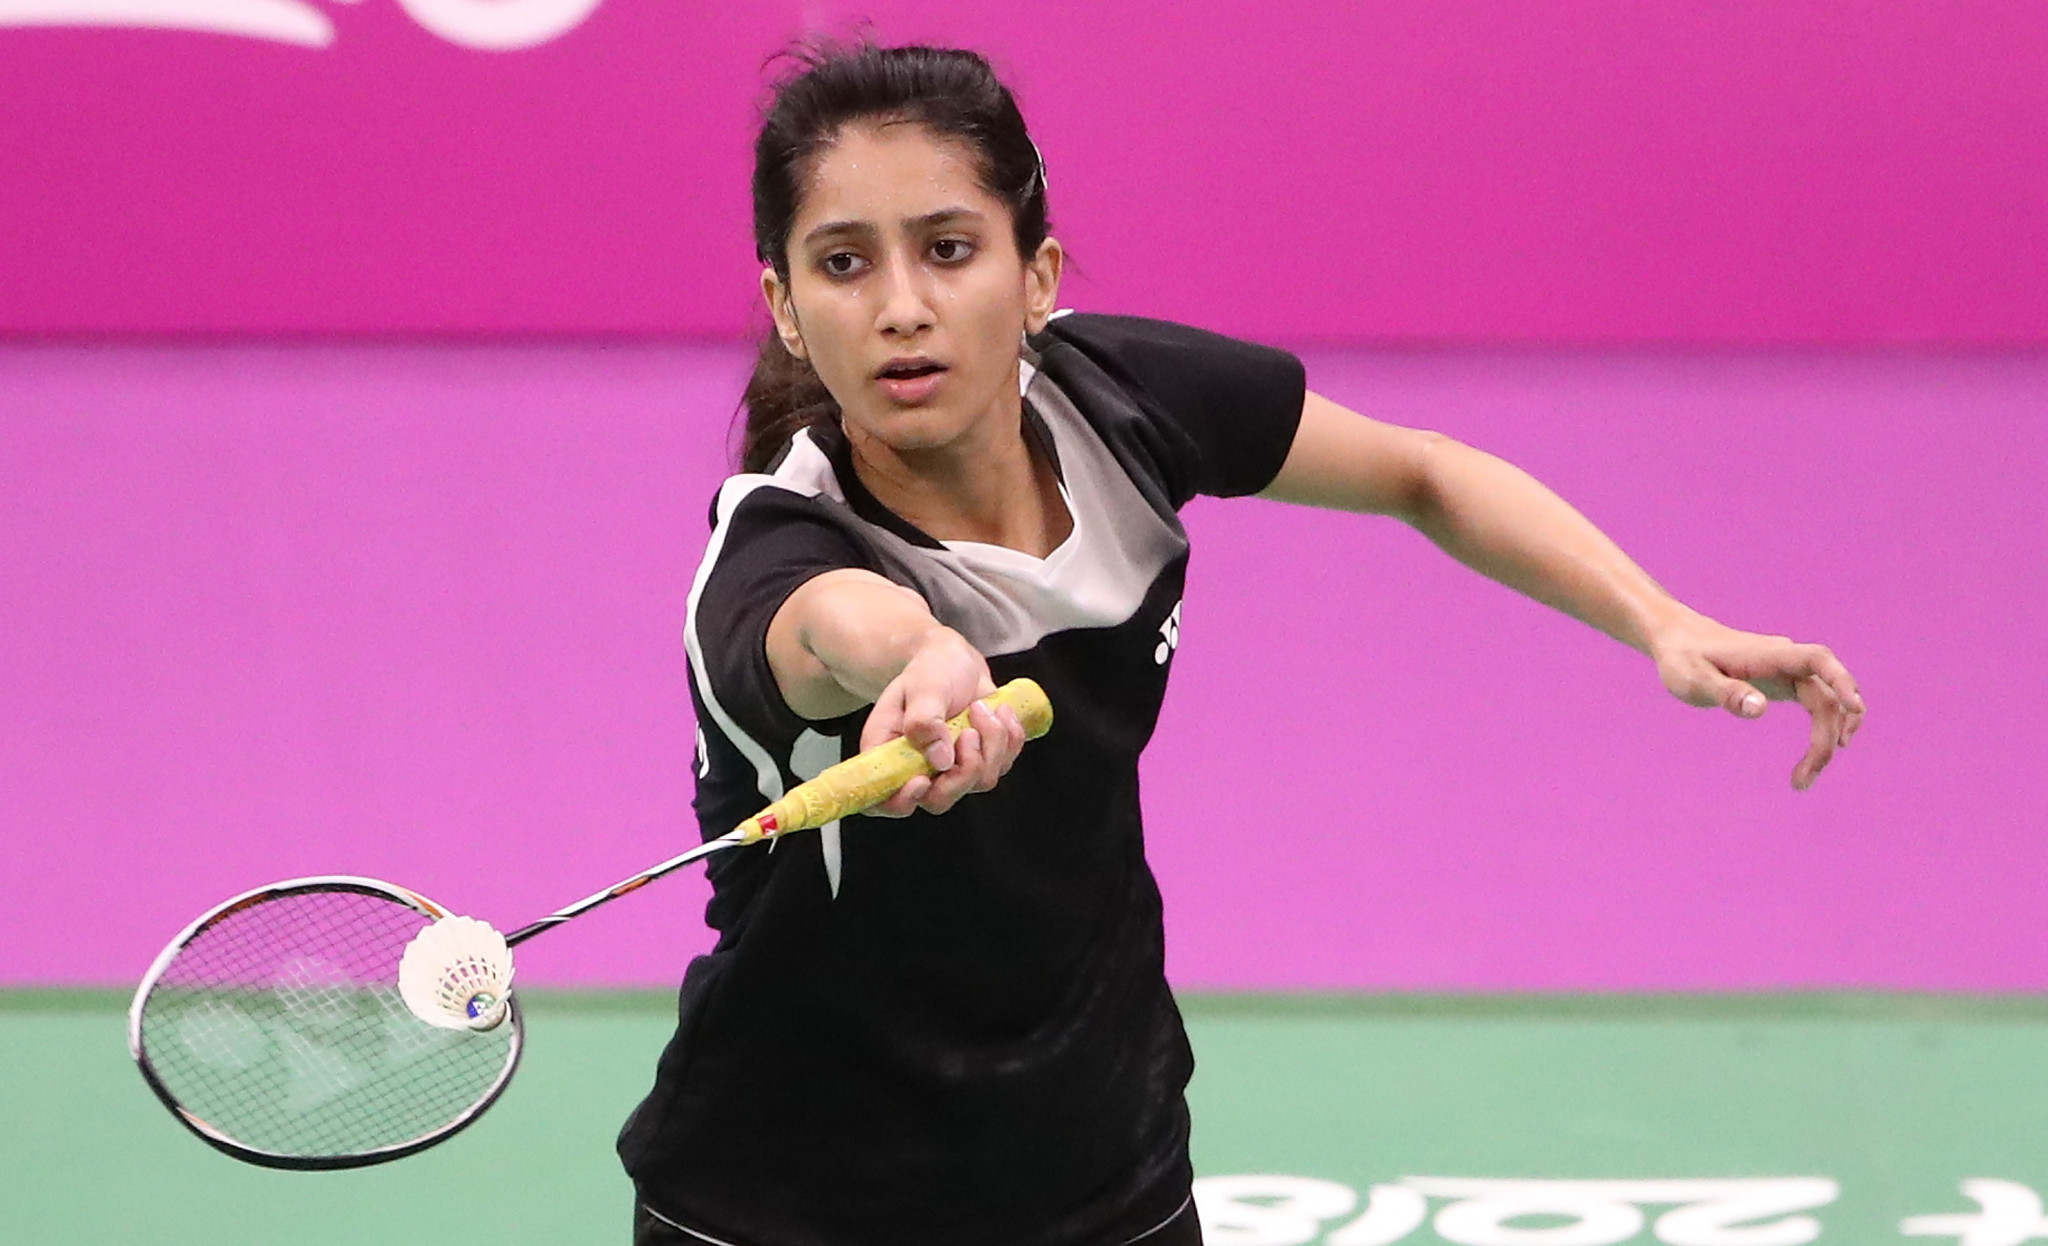 Pakistan's Mahoor Shahzad is looking forward to Tokyo 2020 after winning a fully paid scholarship during the first intake ©Getty Images